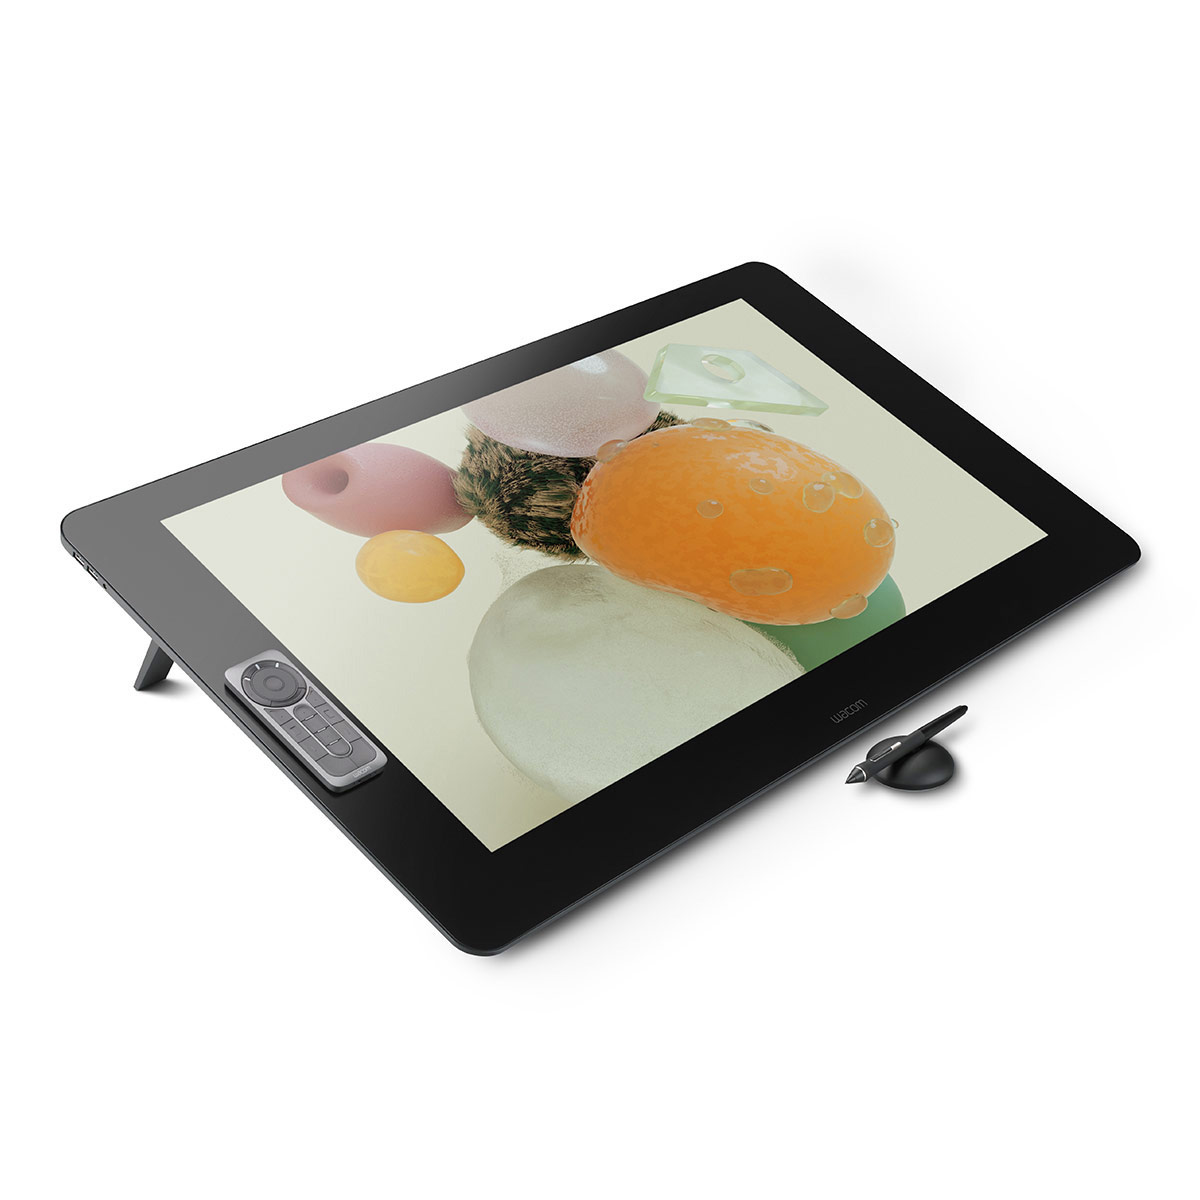 Wacom Cintiq Pro 32 Interactive Pen and Touch Display Tablet *PROMO*